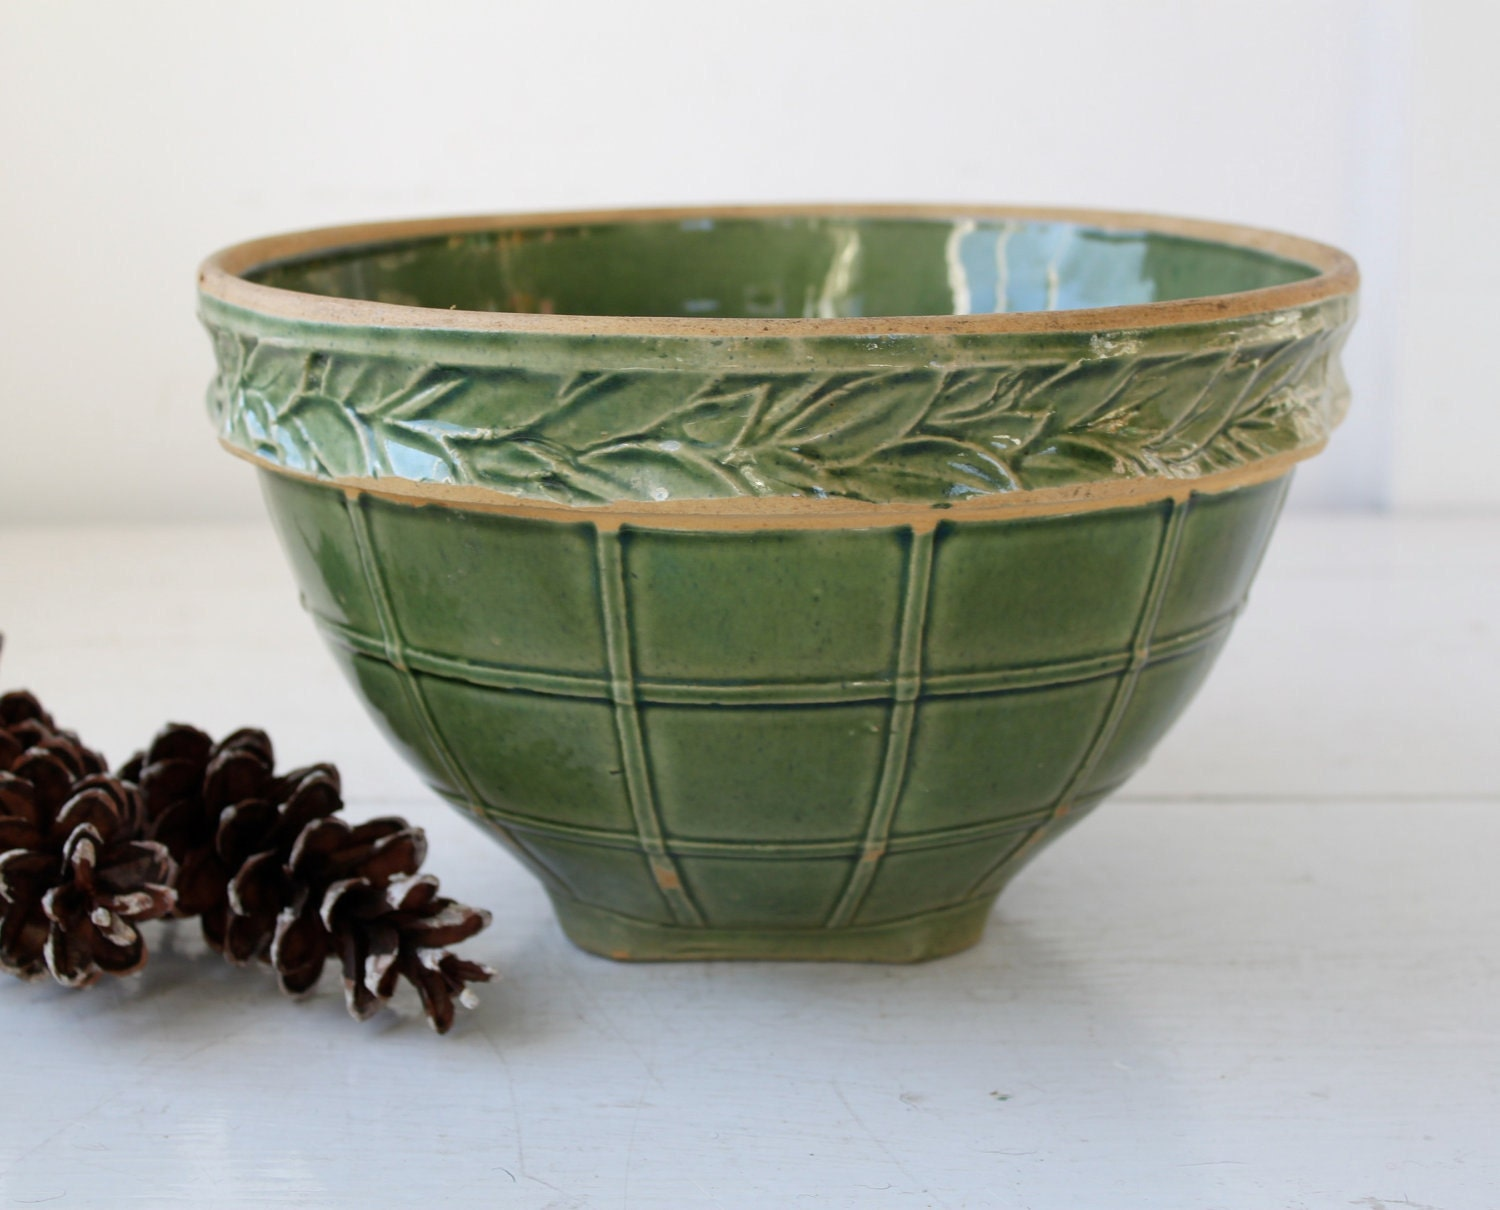 vintage 1930s green pottery bowl. Green glazed yellow ware.